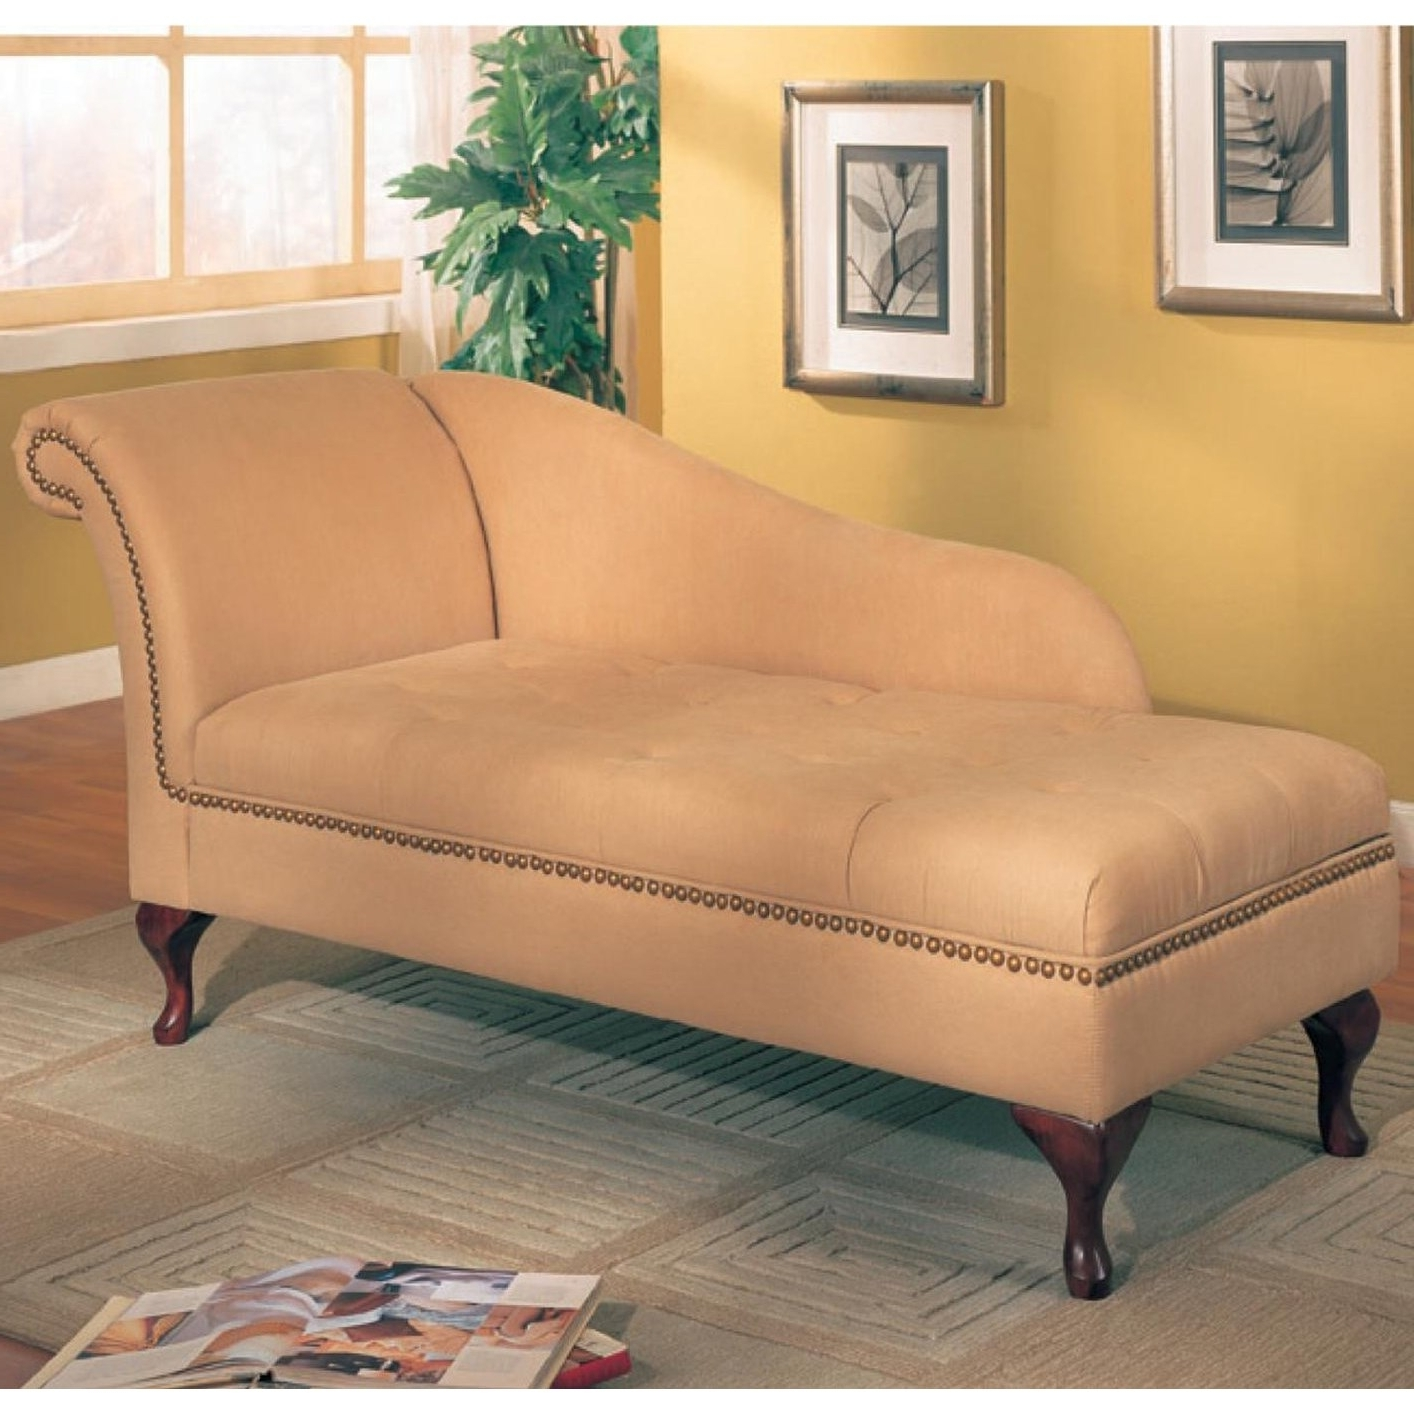 Coaster Chaise Lounges Regarding Trendy Coaster Furniture 550058 Microfiber Chaise Lounge With Flip Open (View 4 of 15)